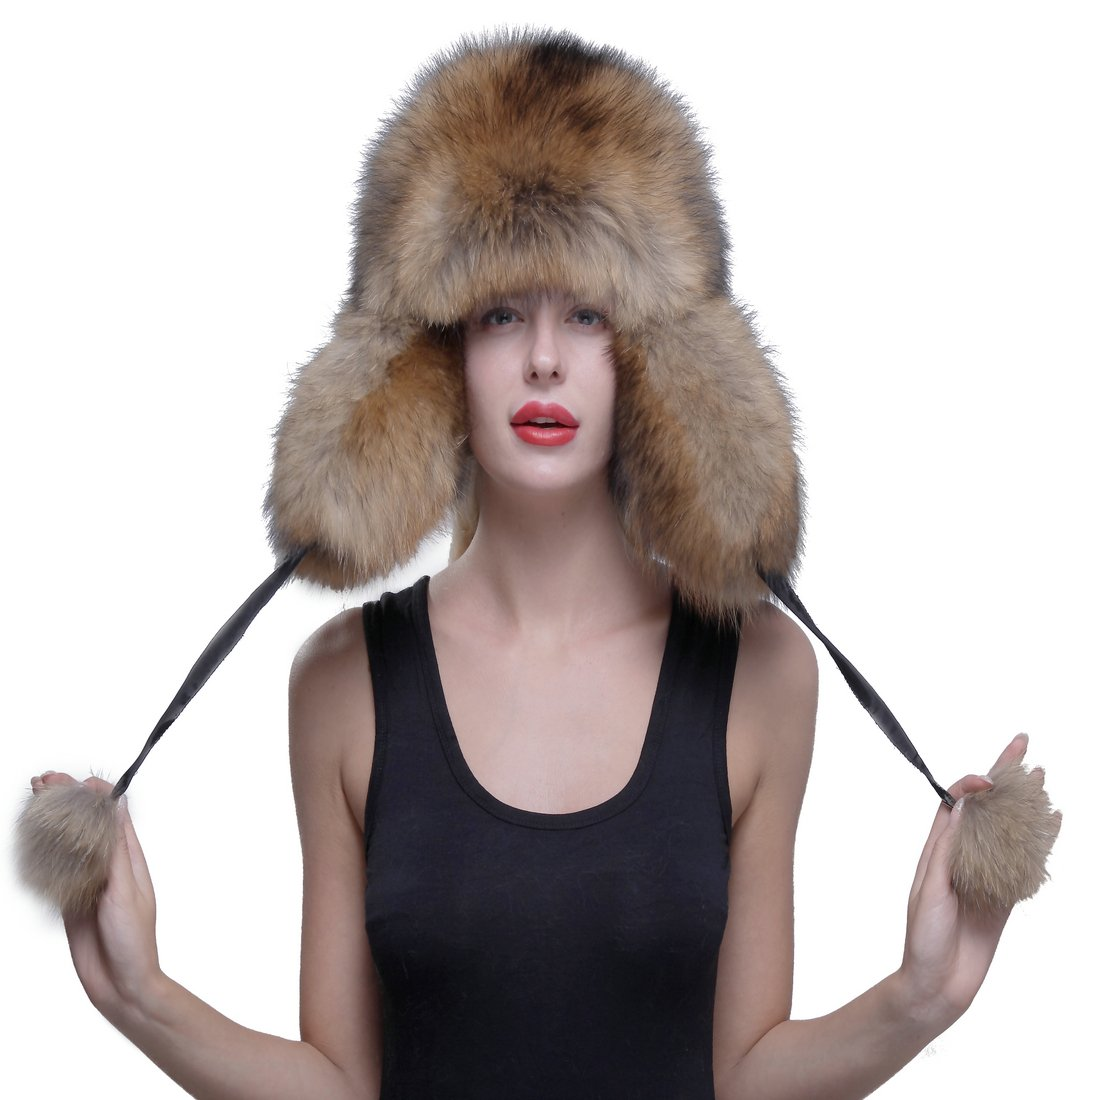 URSFUR Genuine Raccoon Fur Russian Ushanka Trapper Hat Cap with Fur Ball Pompom by URSFUR (Image #2)